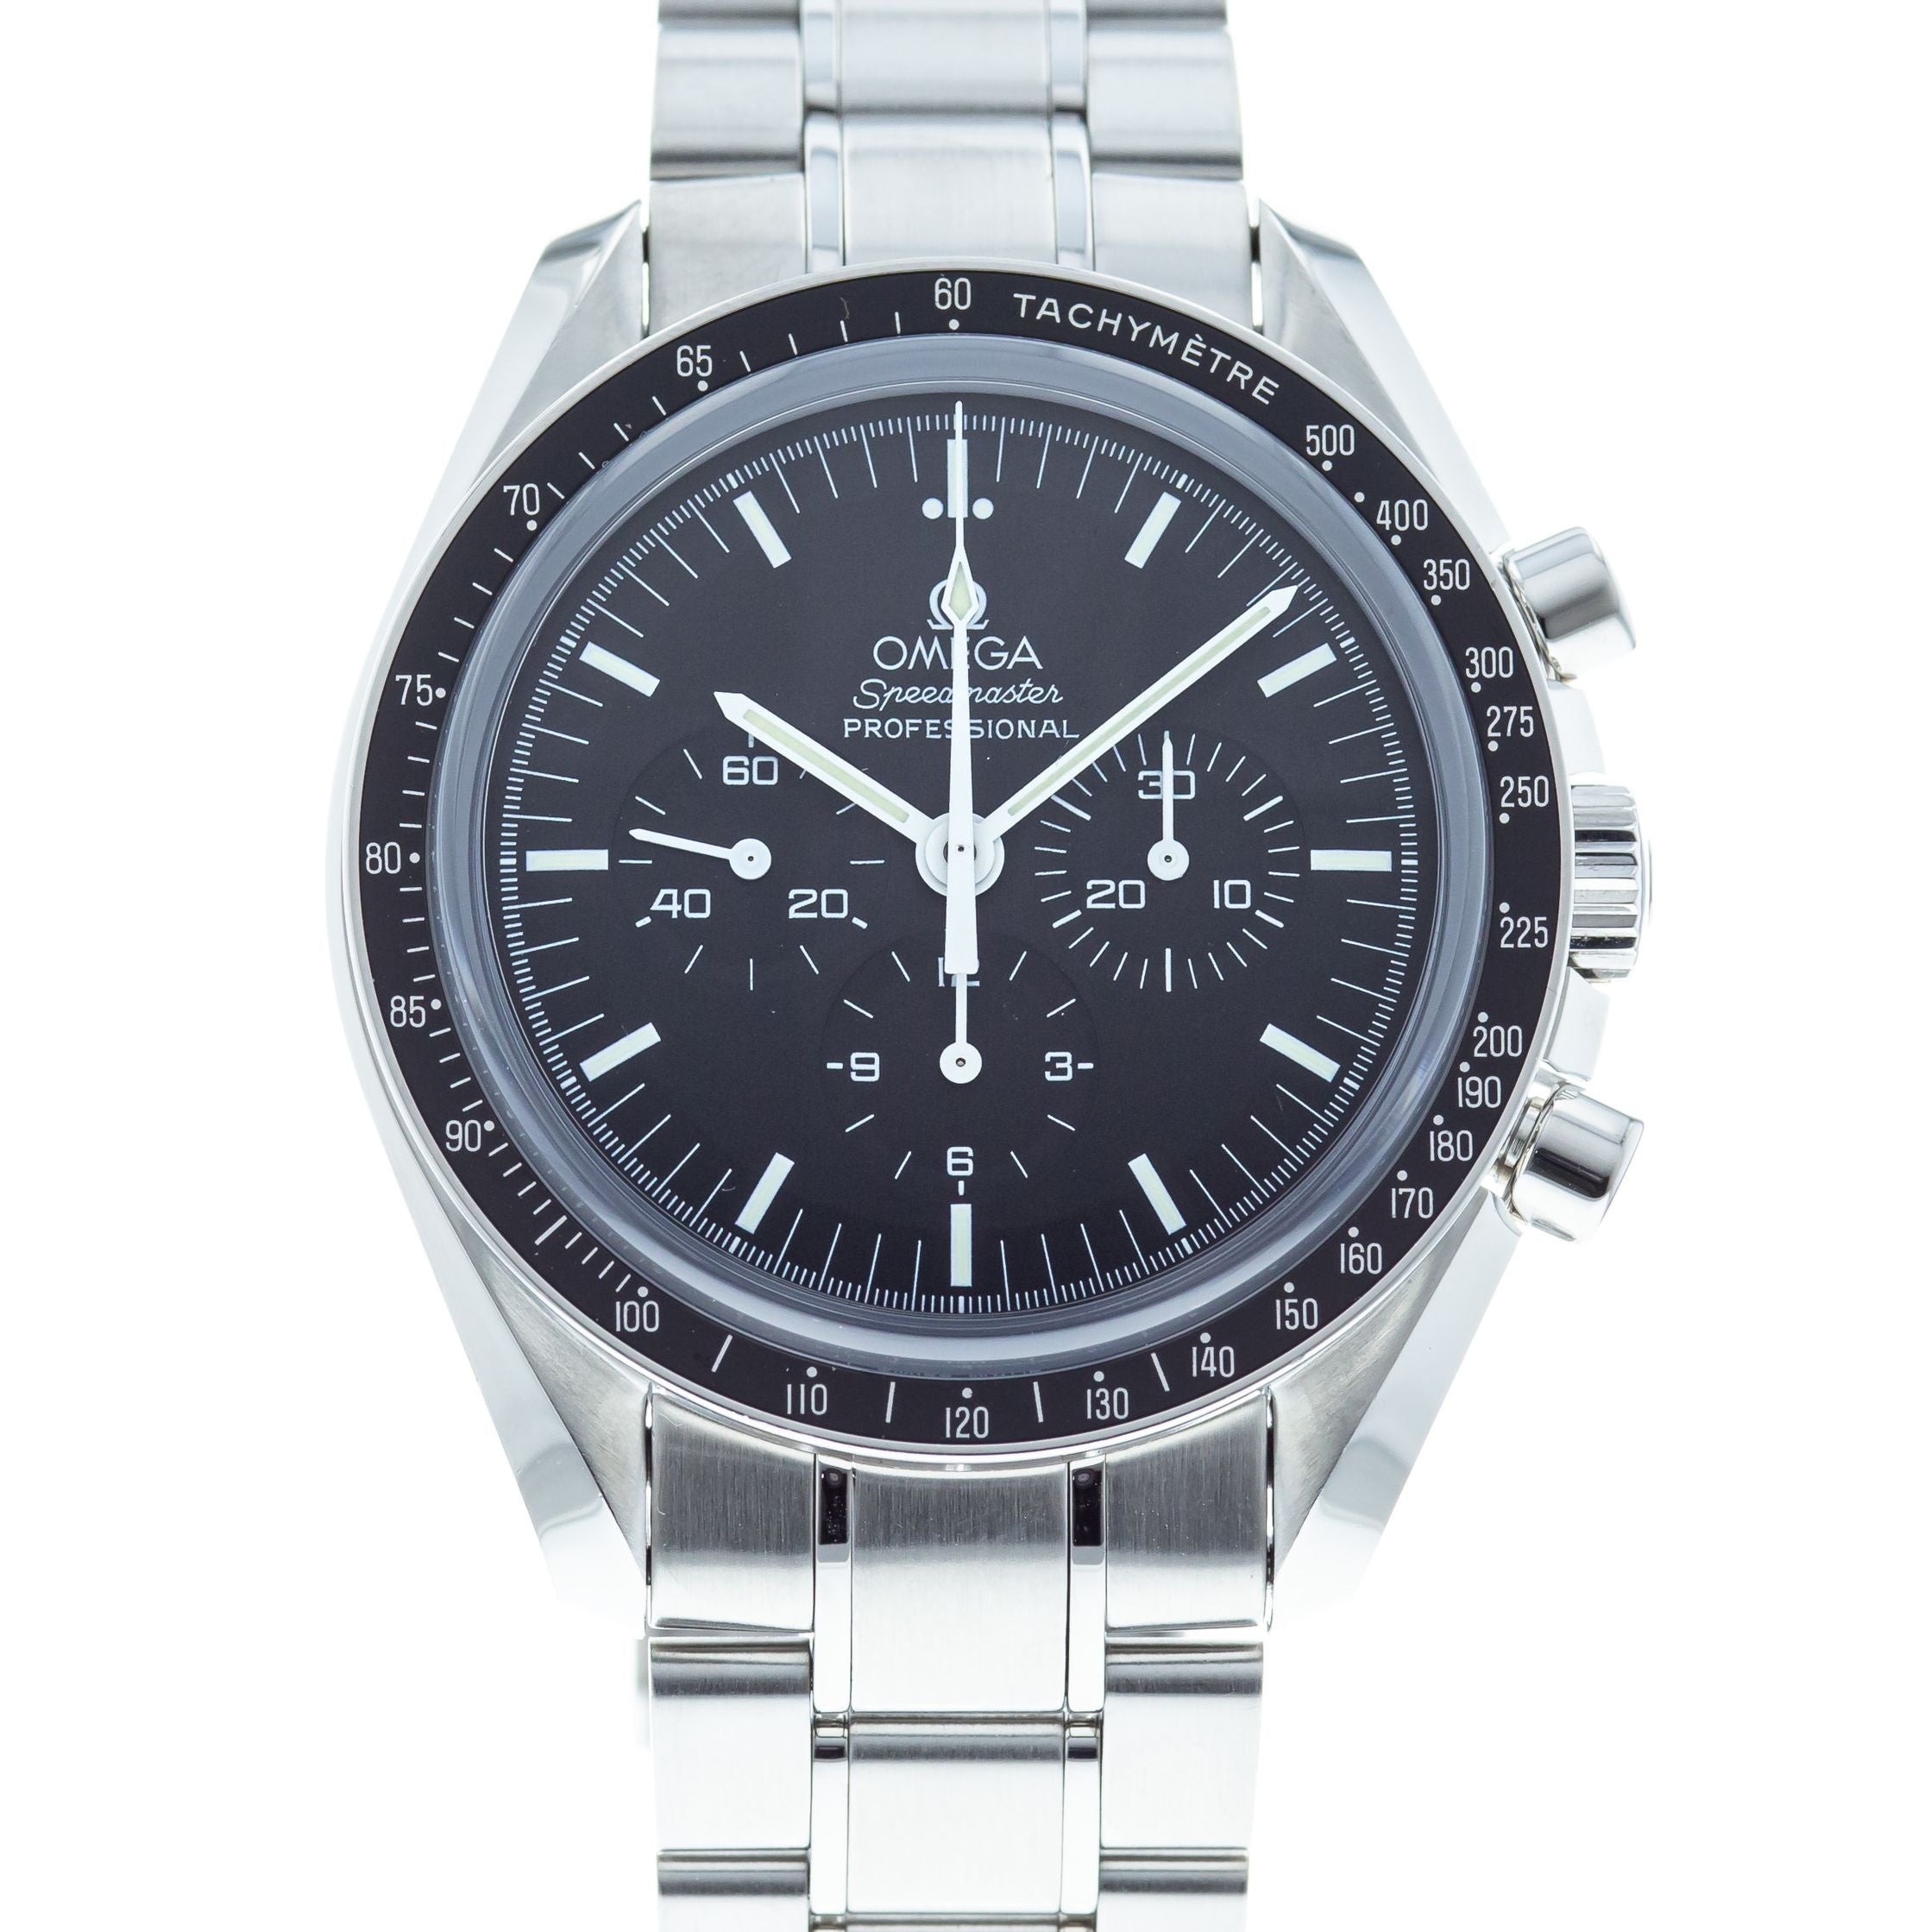 OMEGA Speedmaster Professional Moonwatch 'Sapphire Sandwich' Chronograph 3573.50.00